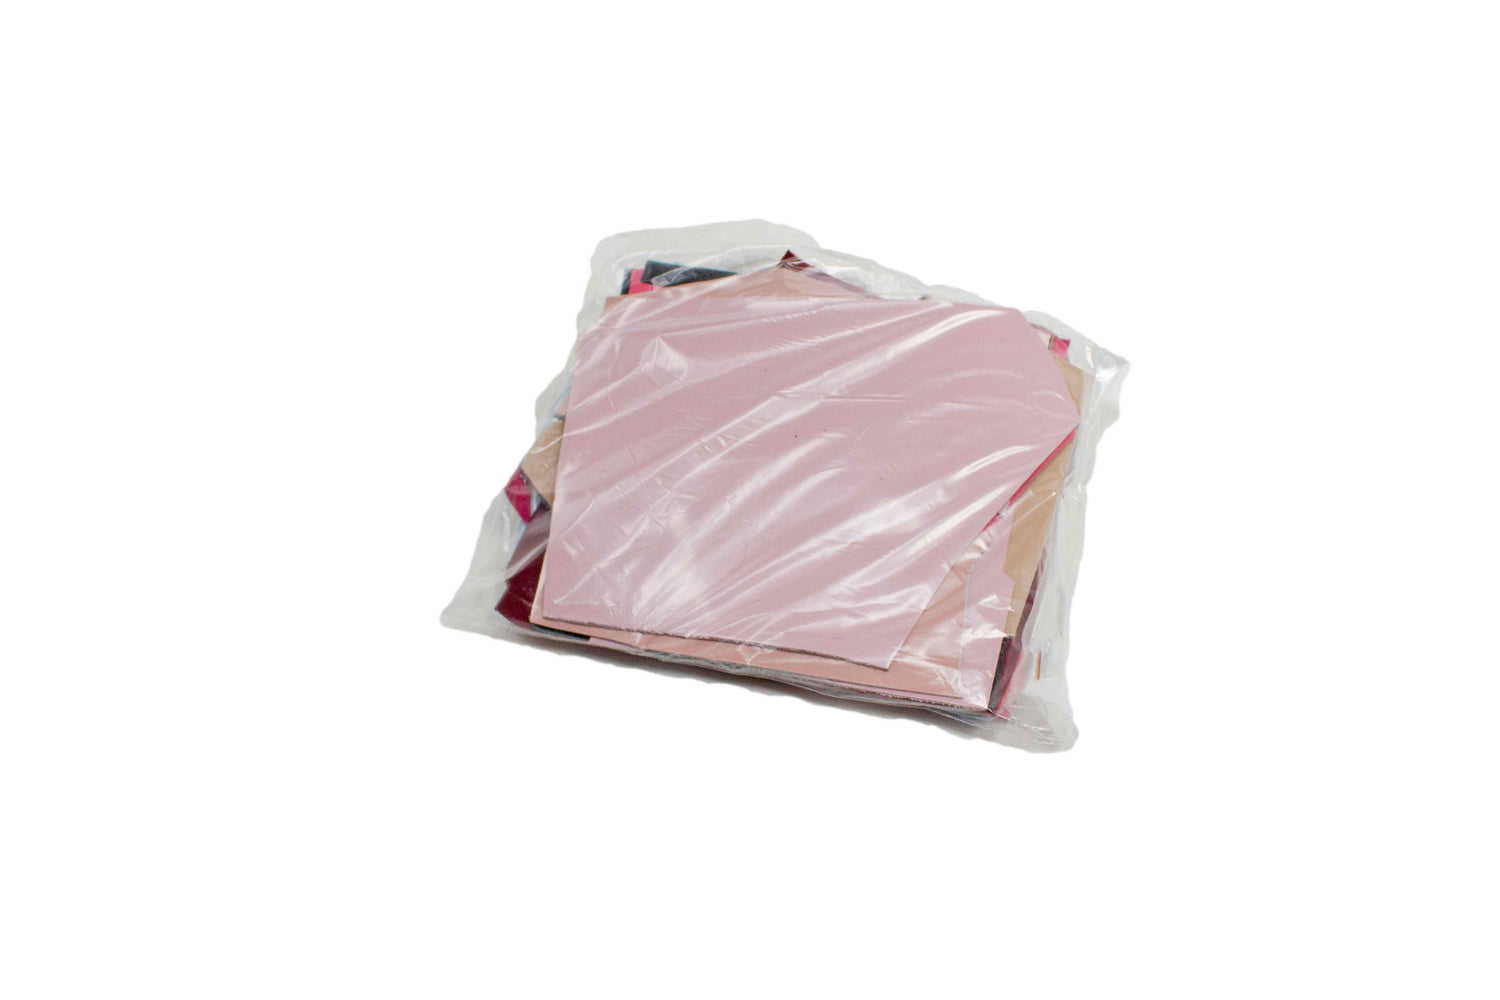 BAG OF 500 GR. SMALL PATENT LEATHER RETAL VARIOUS COLORS